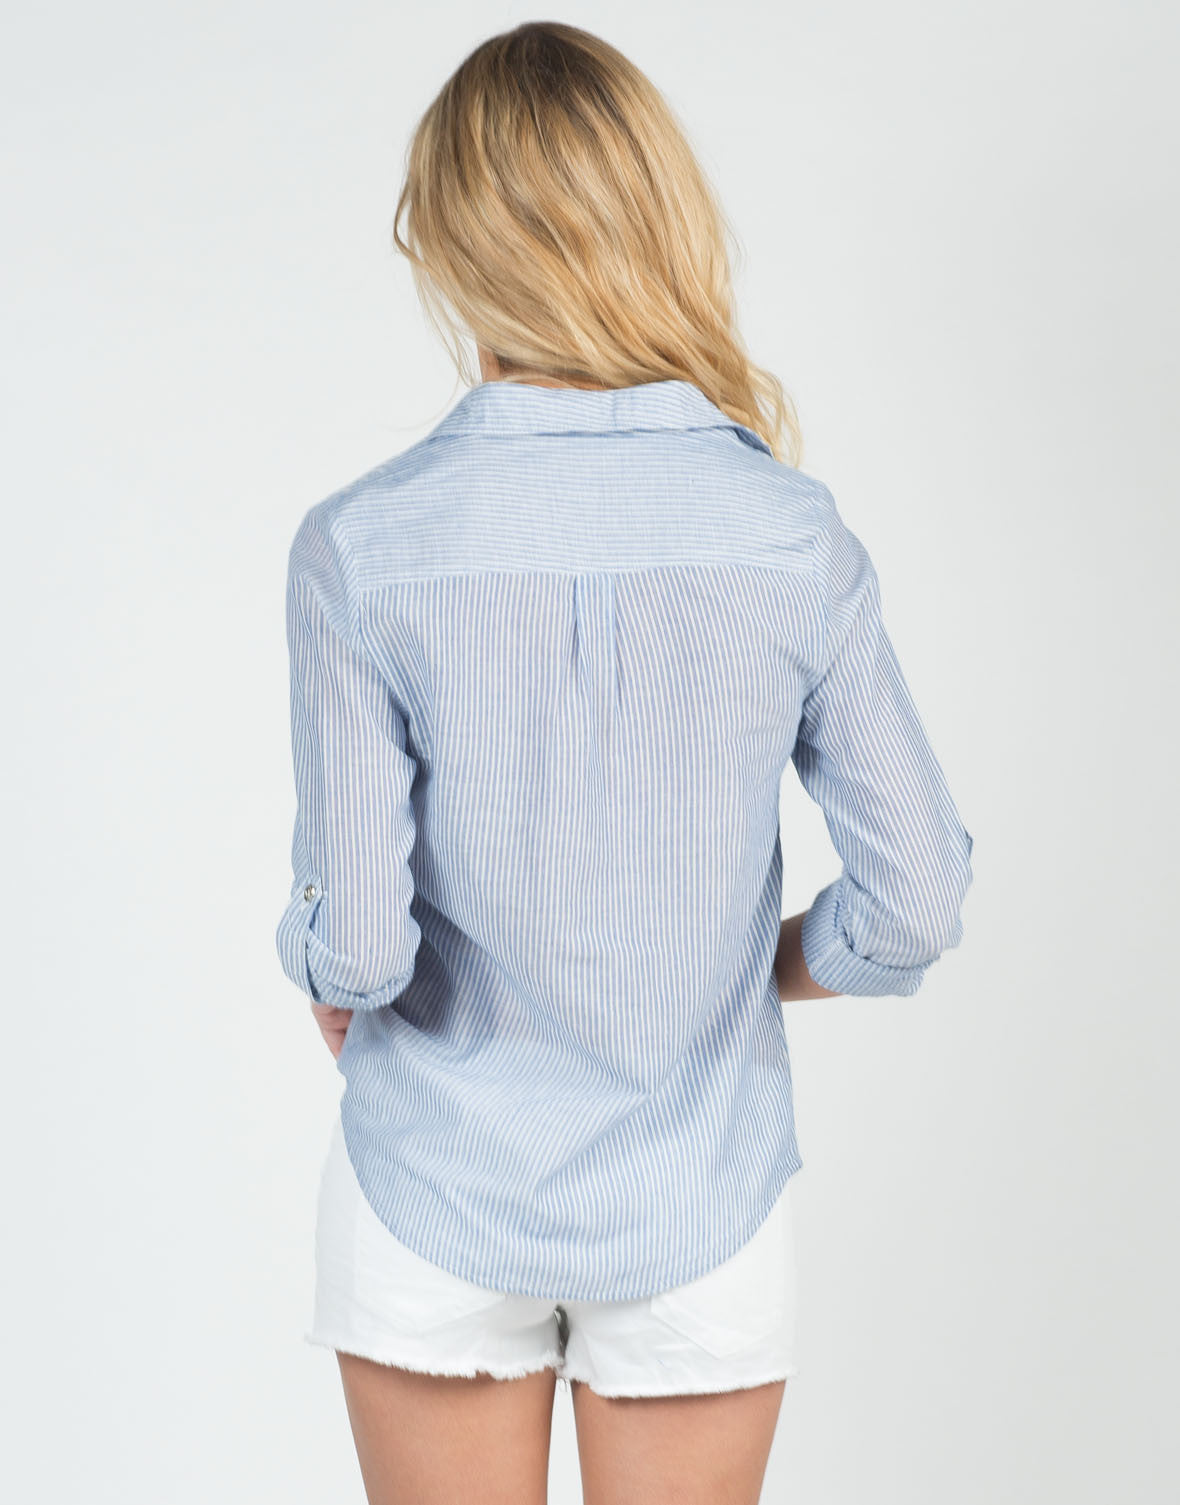 Back View of Pin Striped Button Up Blouse